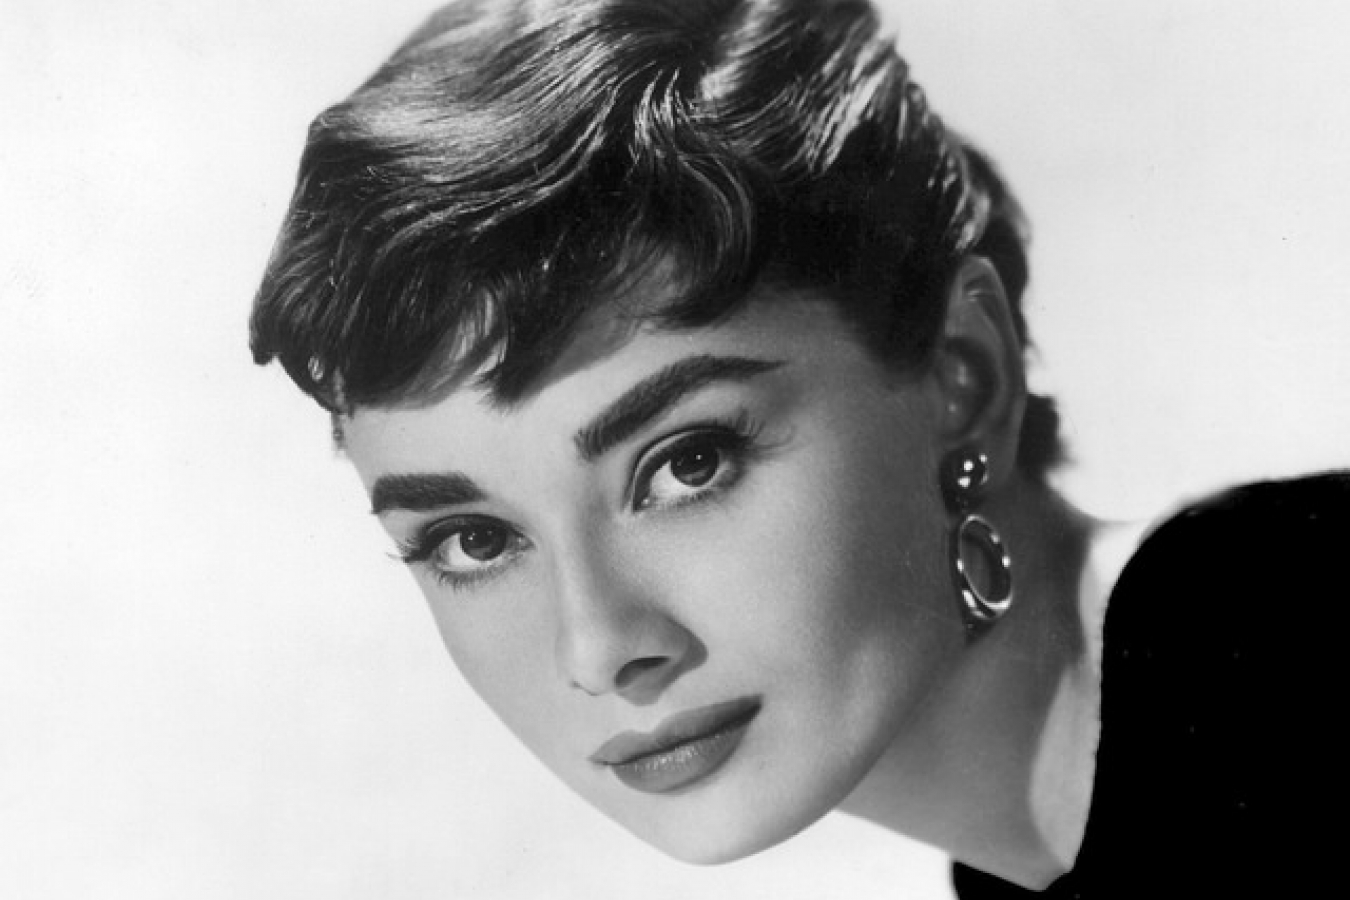 Audrey Hepburn famous British Immigrant to Hollywood